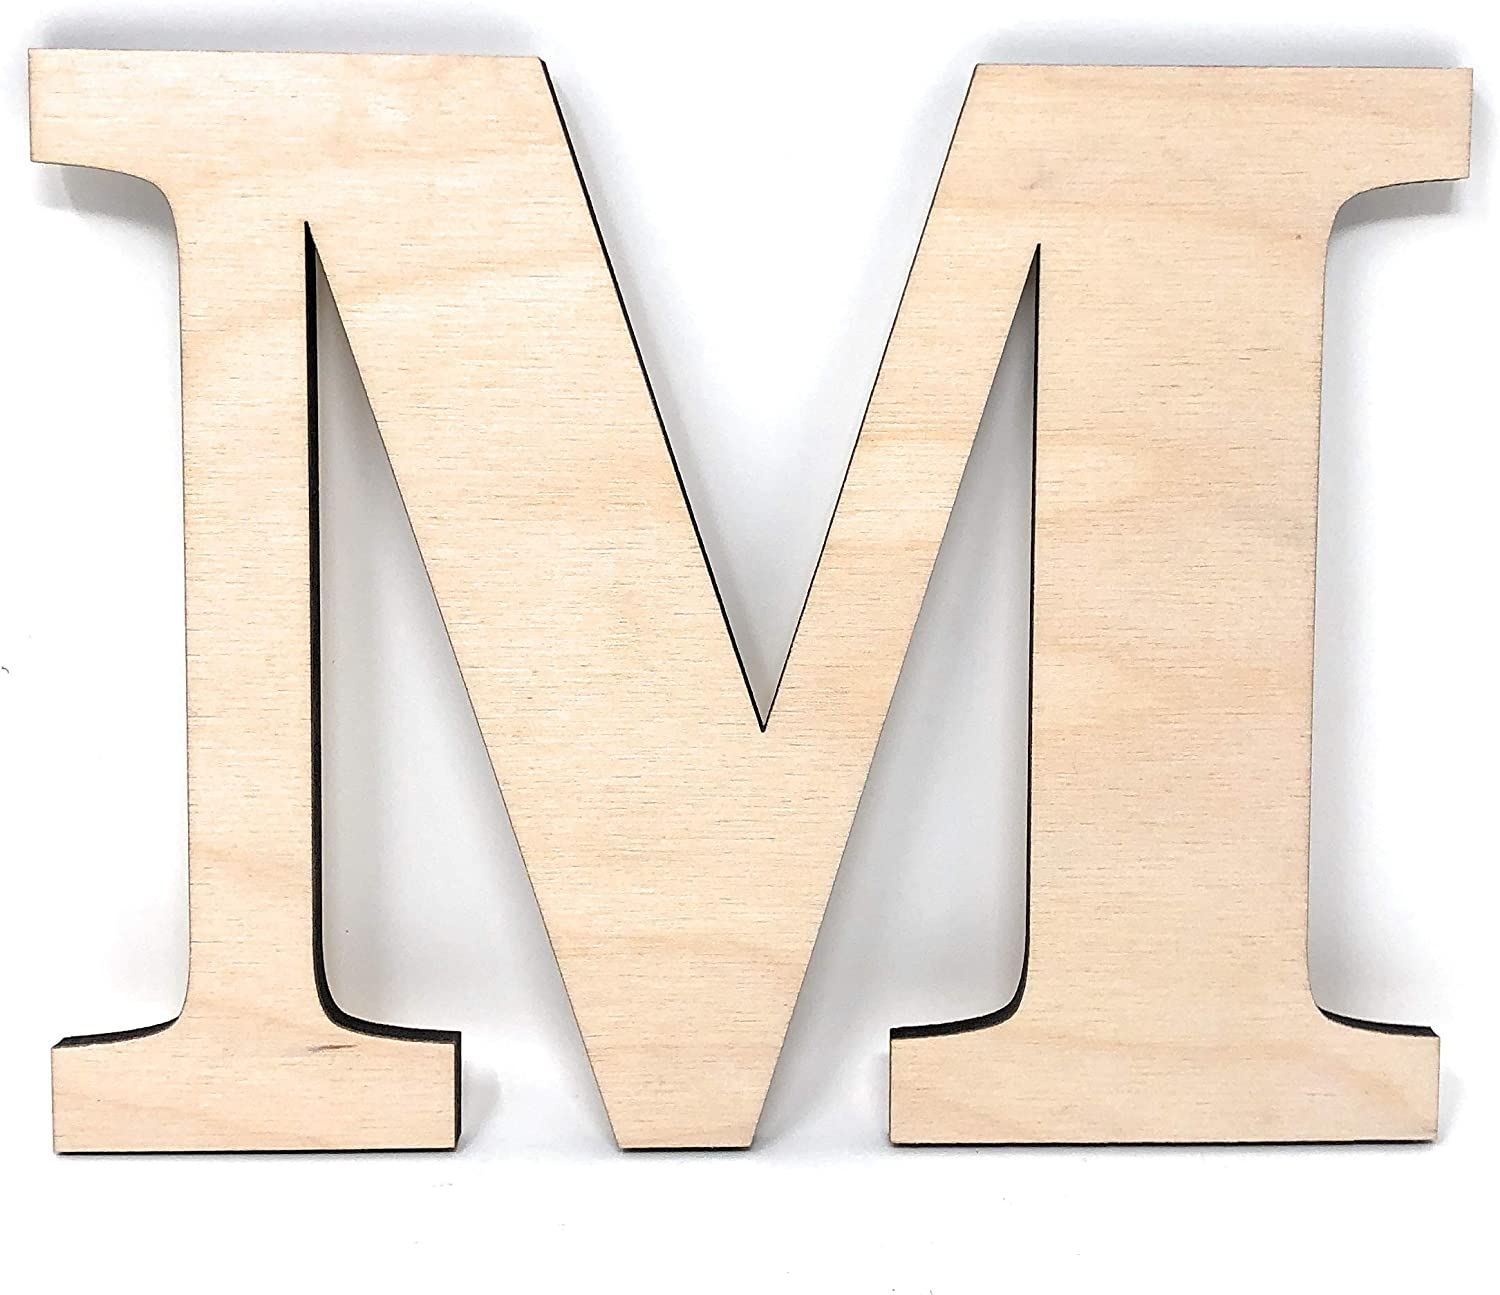 "Gocutouts 12"" Wooden M Unfinished Wooden Letters Paint Ready Wall Decor News (12"" - 1/4"" Thick, M)"